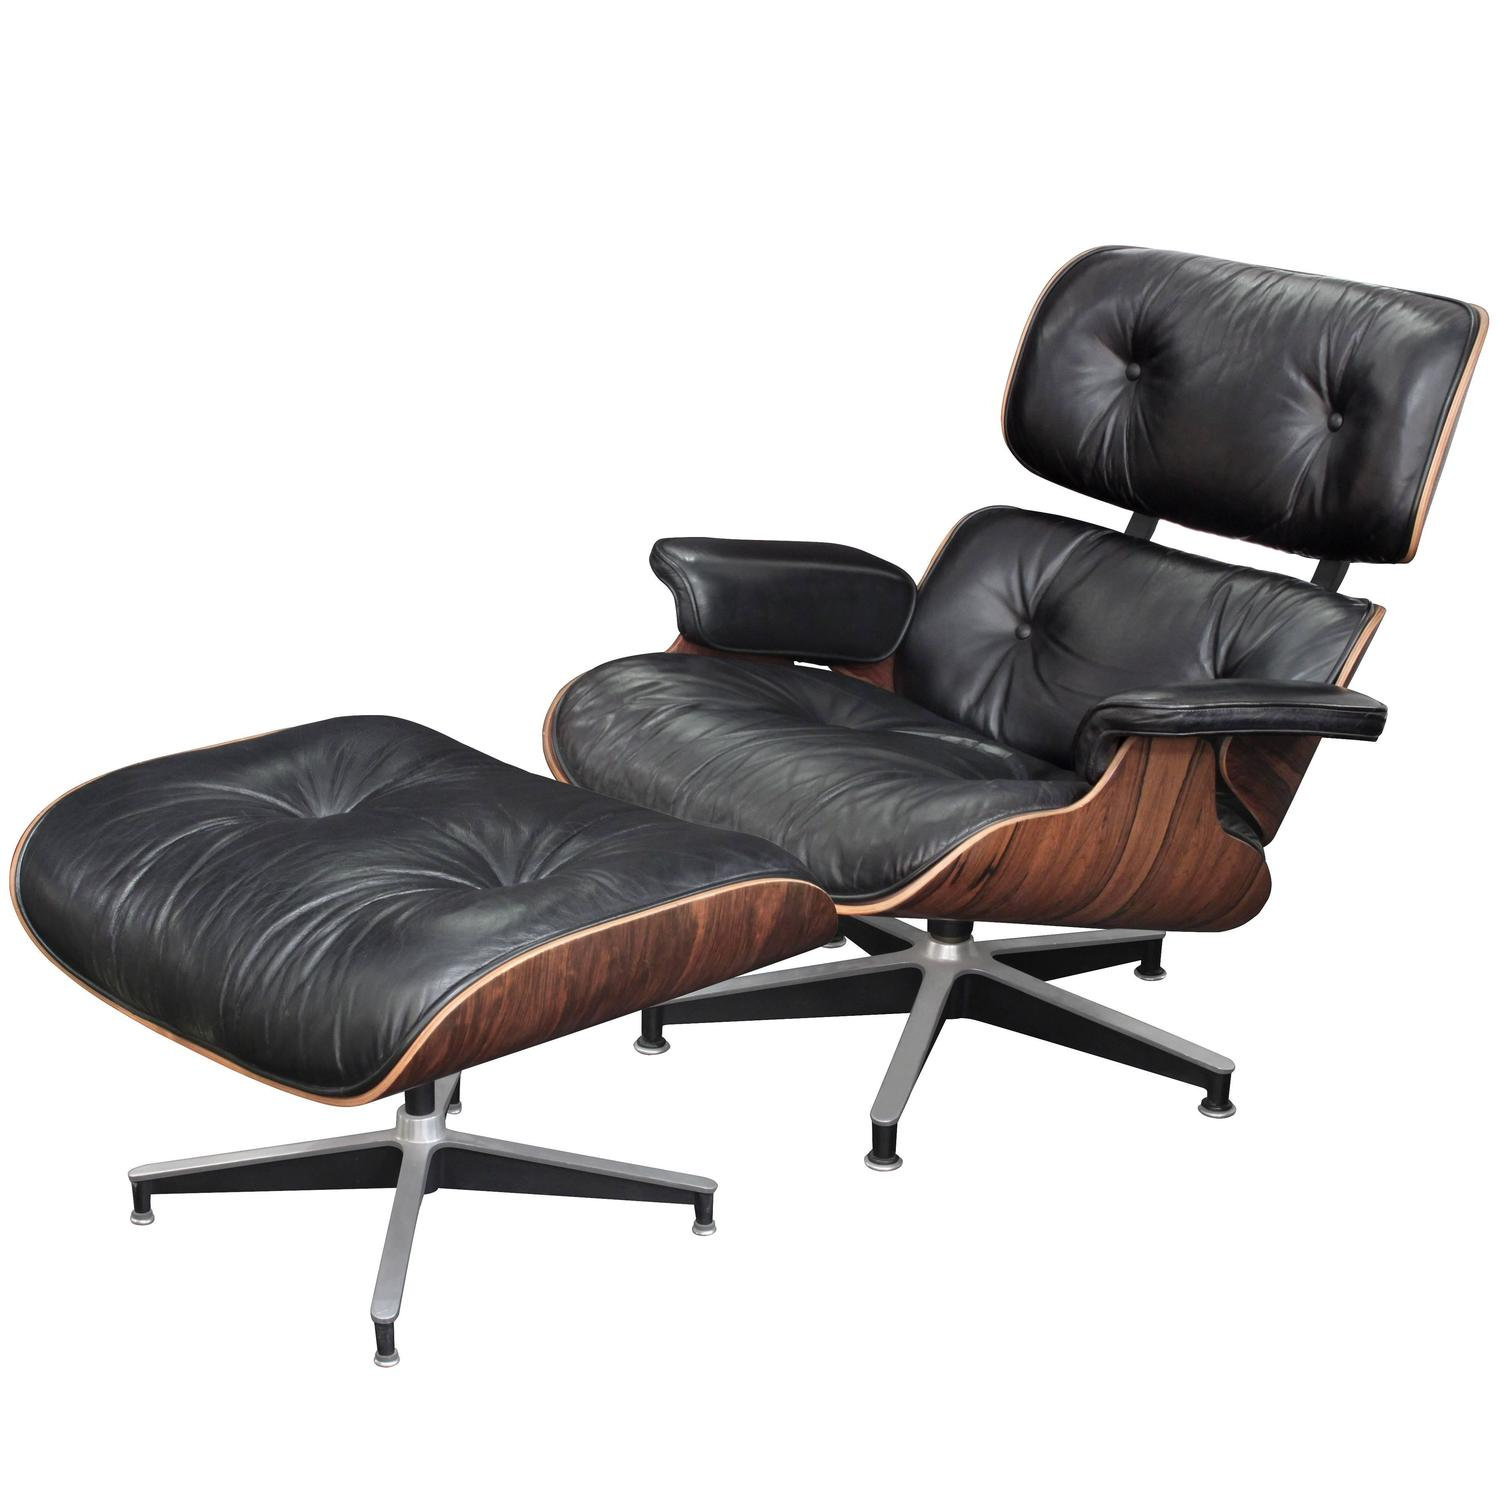 iconic lounge chair and ottoman by charles and ray eames. Black Bedroom Furniture Sets. Home Design Ideas